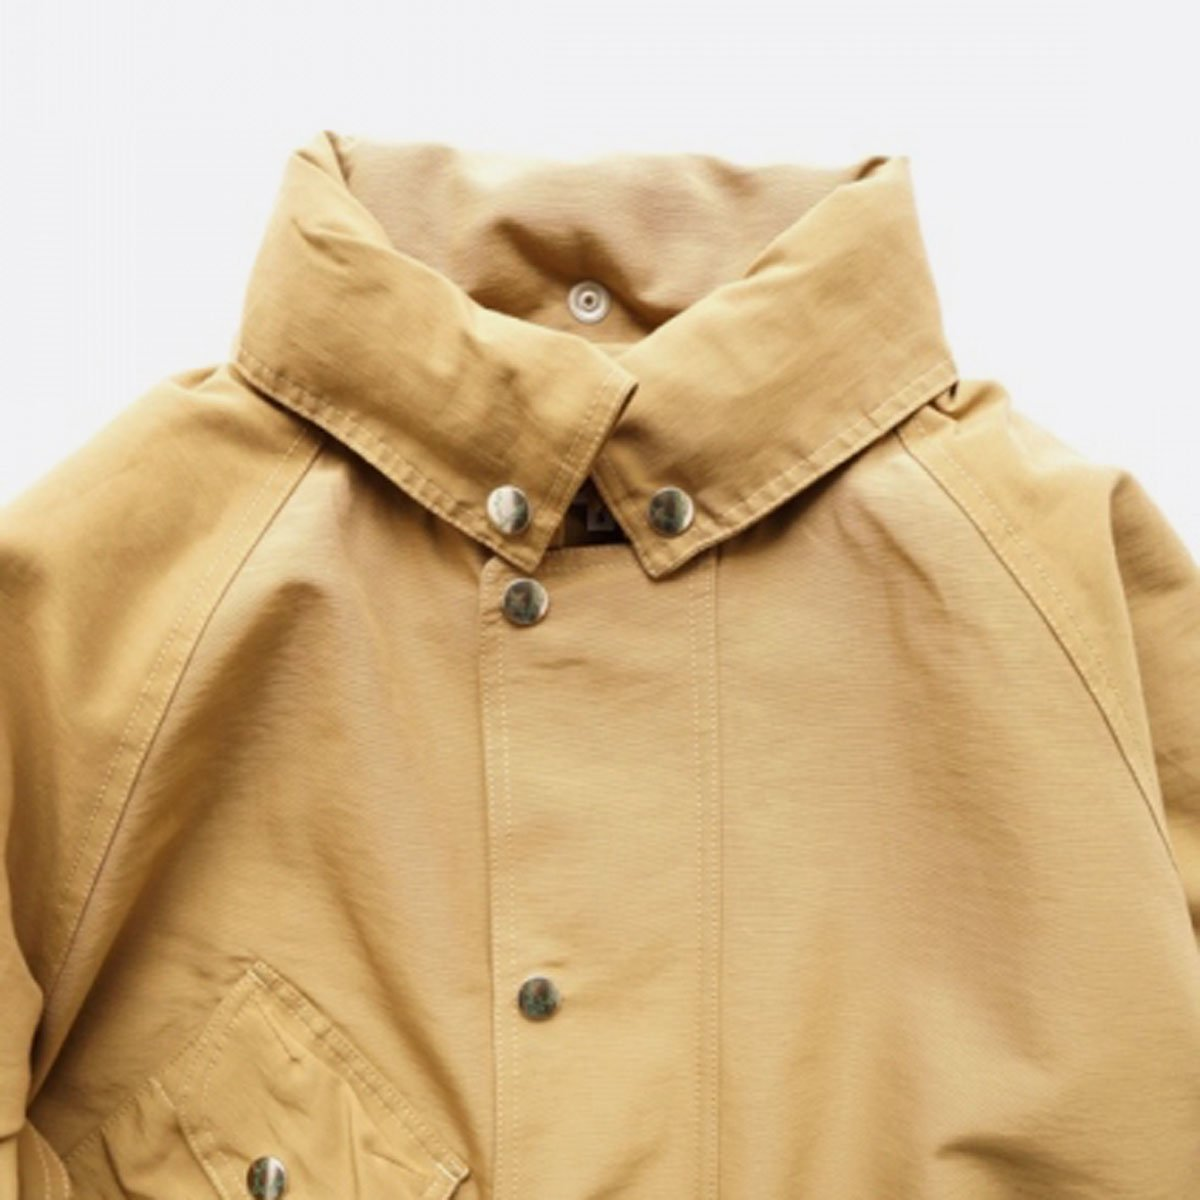 SOUTH2WEST8 60/40 CARMEL JACKET (KHAKI)4